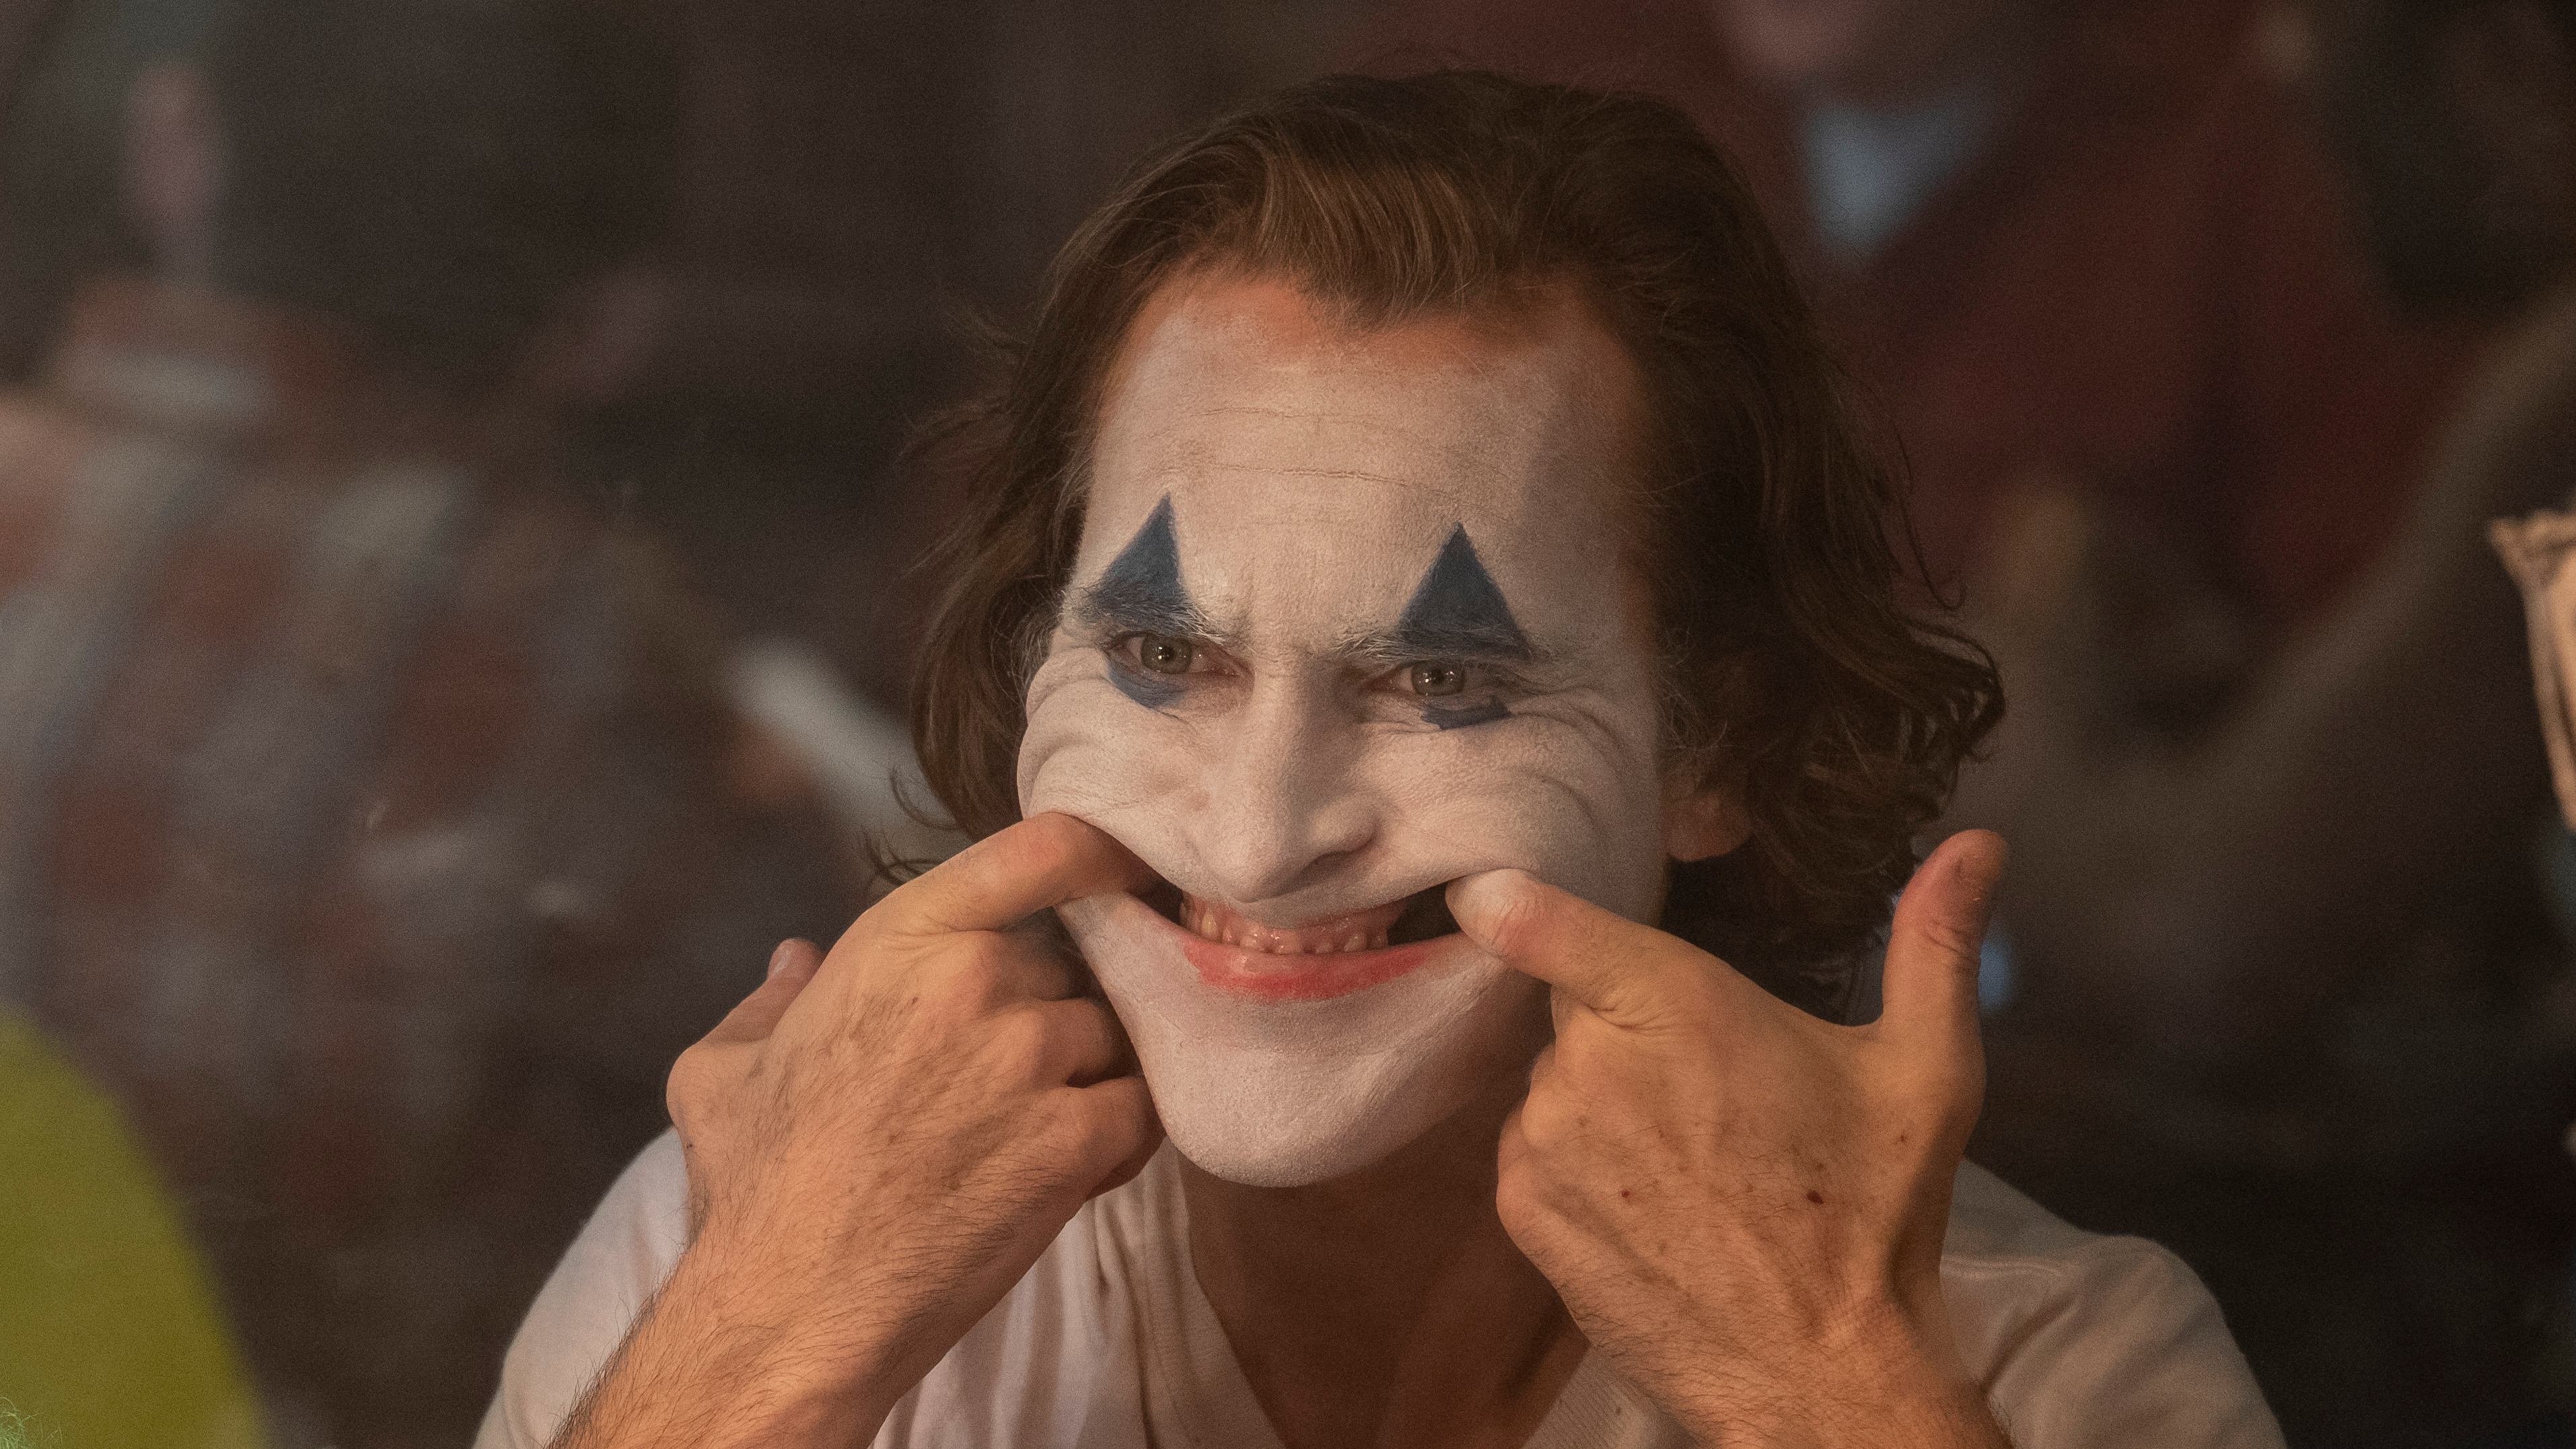 Joaquin Phoenix as Joker in Joker.